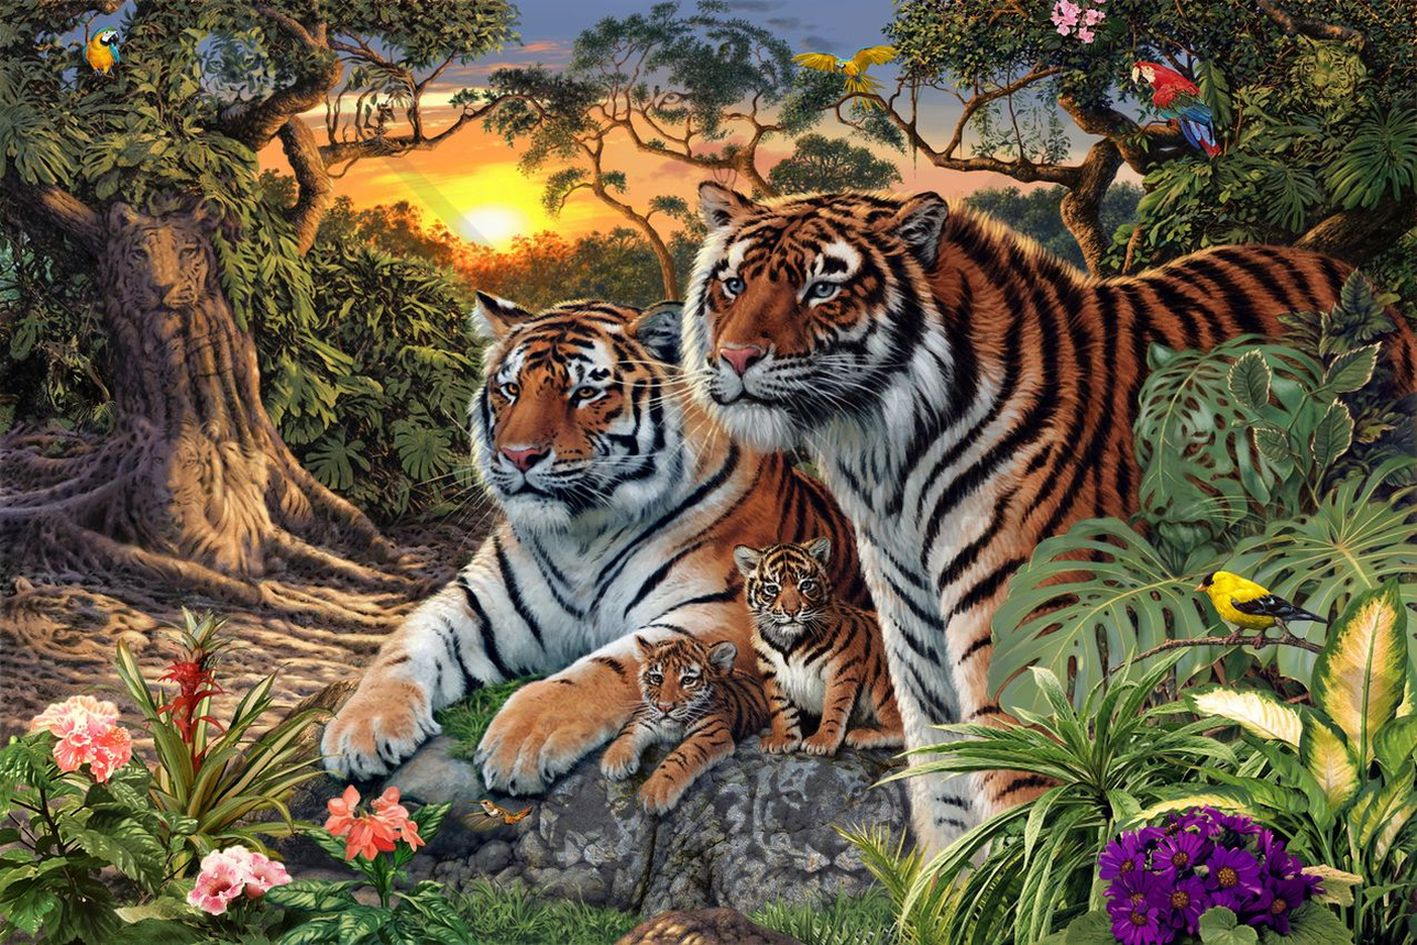 how many tigers can you see in this picture whatsapp